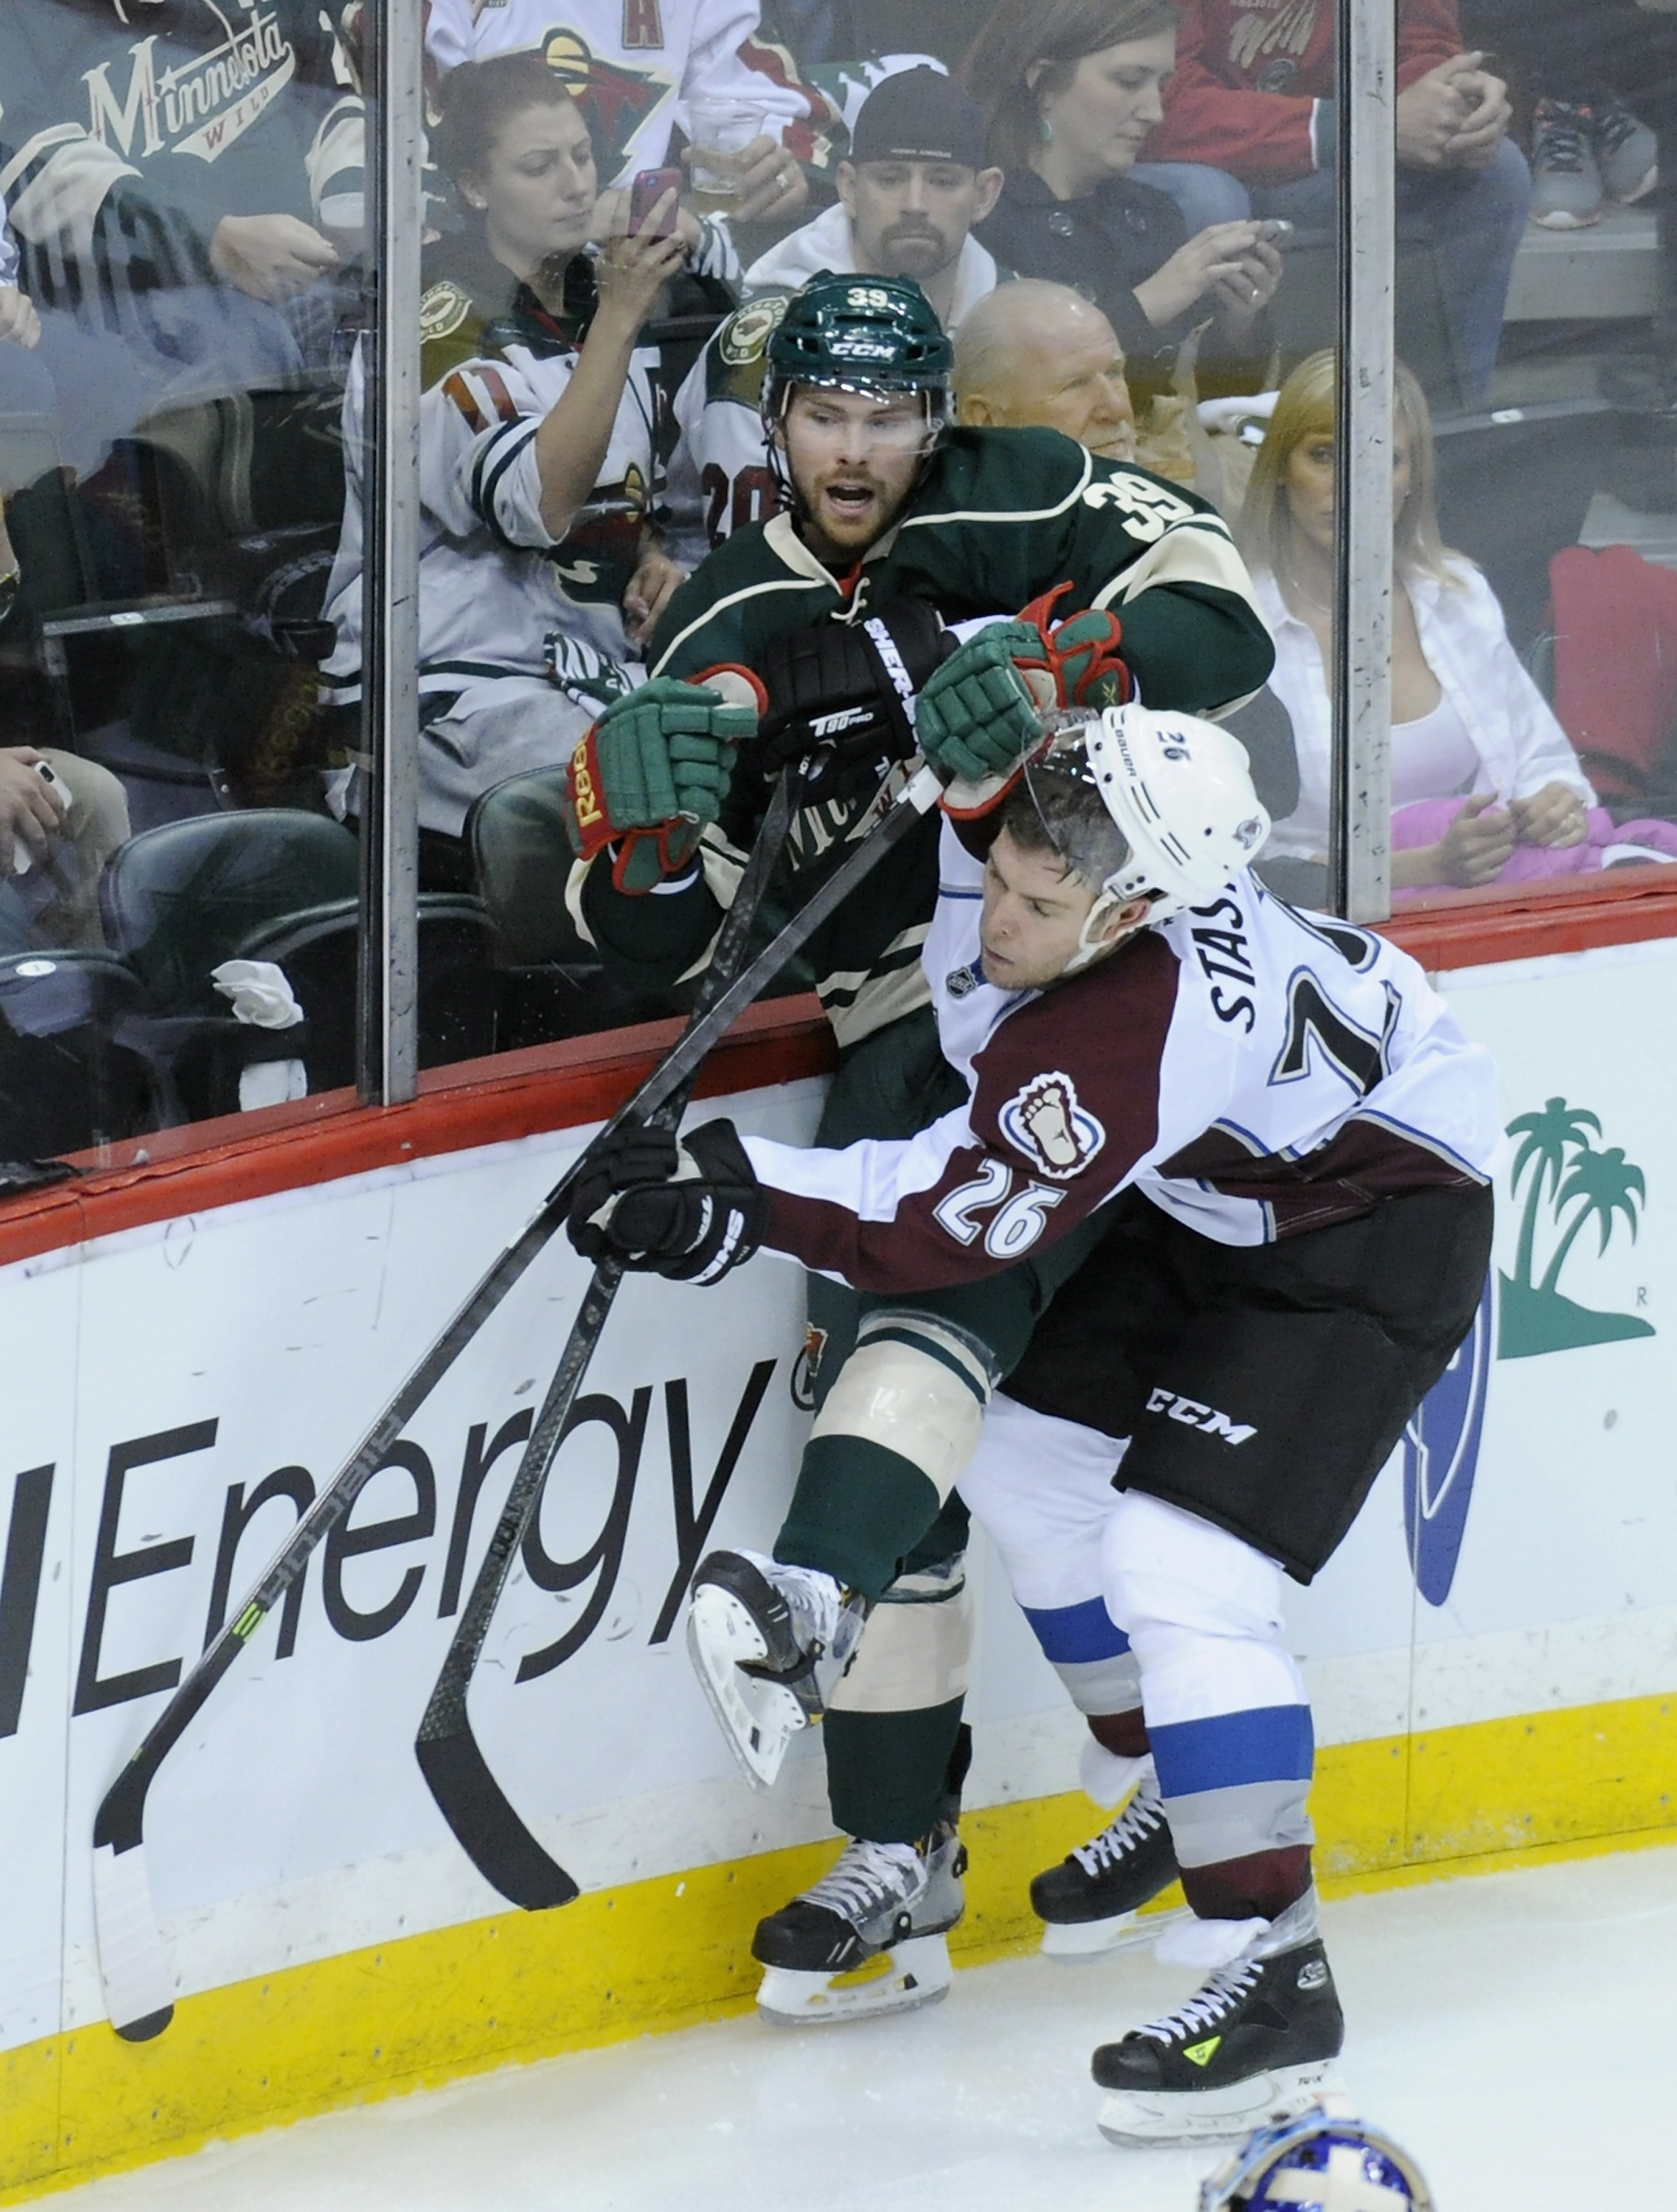 Paul Stastny #26 of the Colorado Avalanche checks Nate Prosser #39 of the Minnesota Wild into the boards during the second period in Game Four of the First Round of the 2014 NHL Stanley Cup Playoffs on April 24, 2014 at Xcel Energy Center in St Paul, Minnesota. The Wild defeated the Avalanche 2-1.  (Photo by Hannah Foslien/Getty Images)